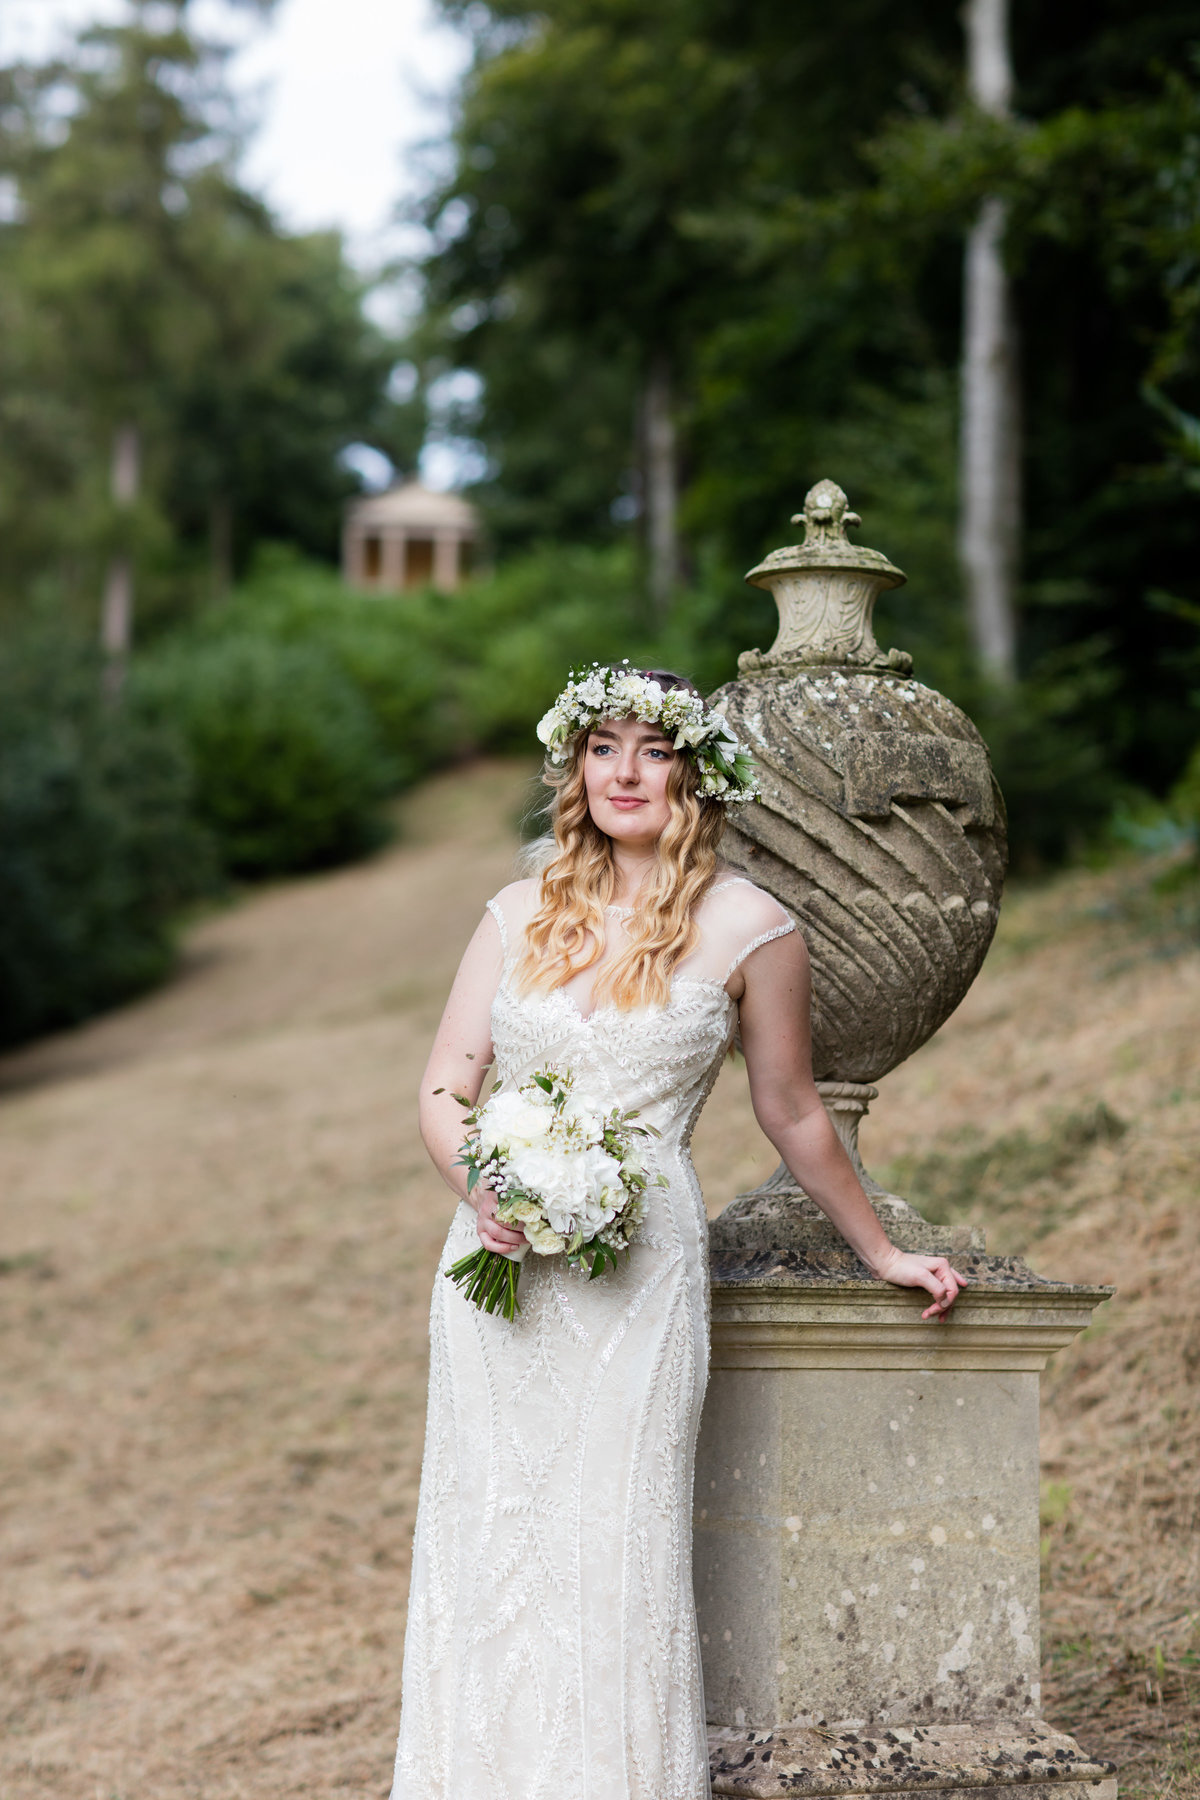 sommerset wedding photographer at hestercombe